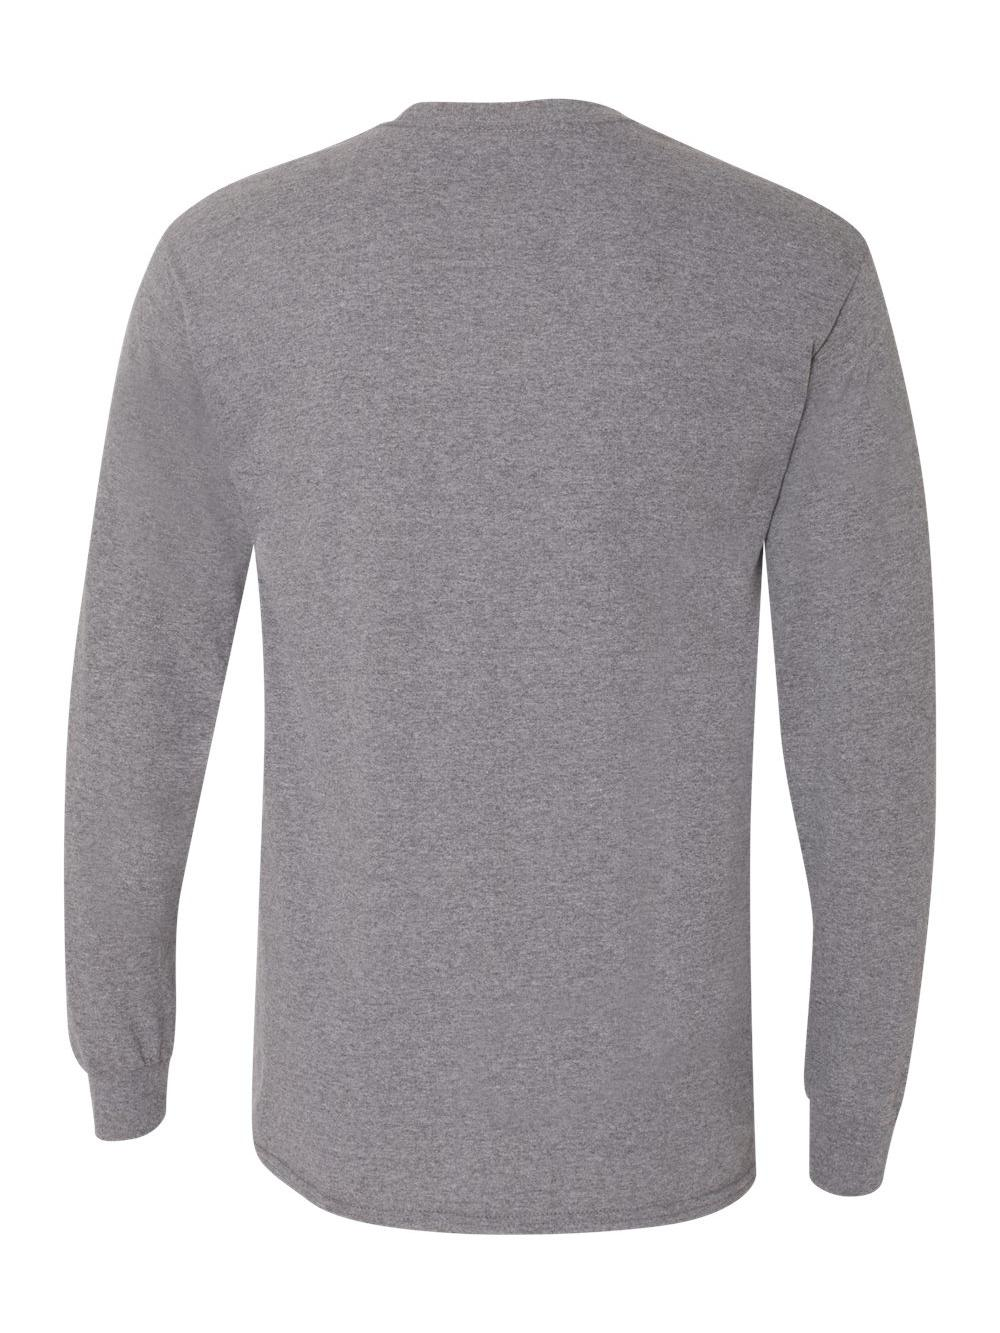 Gildan-DryBlend-50-50-Long-Sleeve-T-Shirt-8400 thumbnail 19